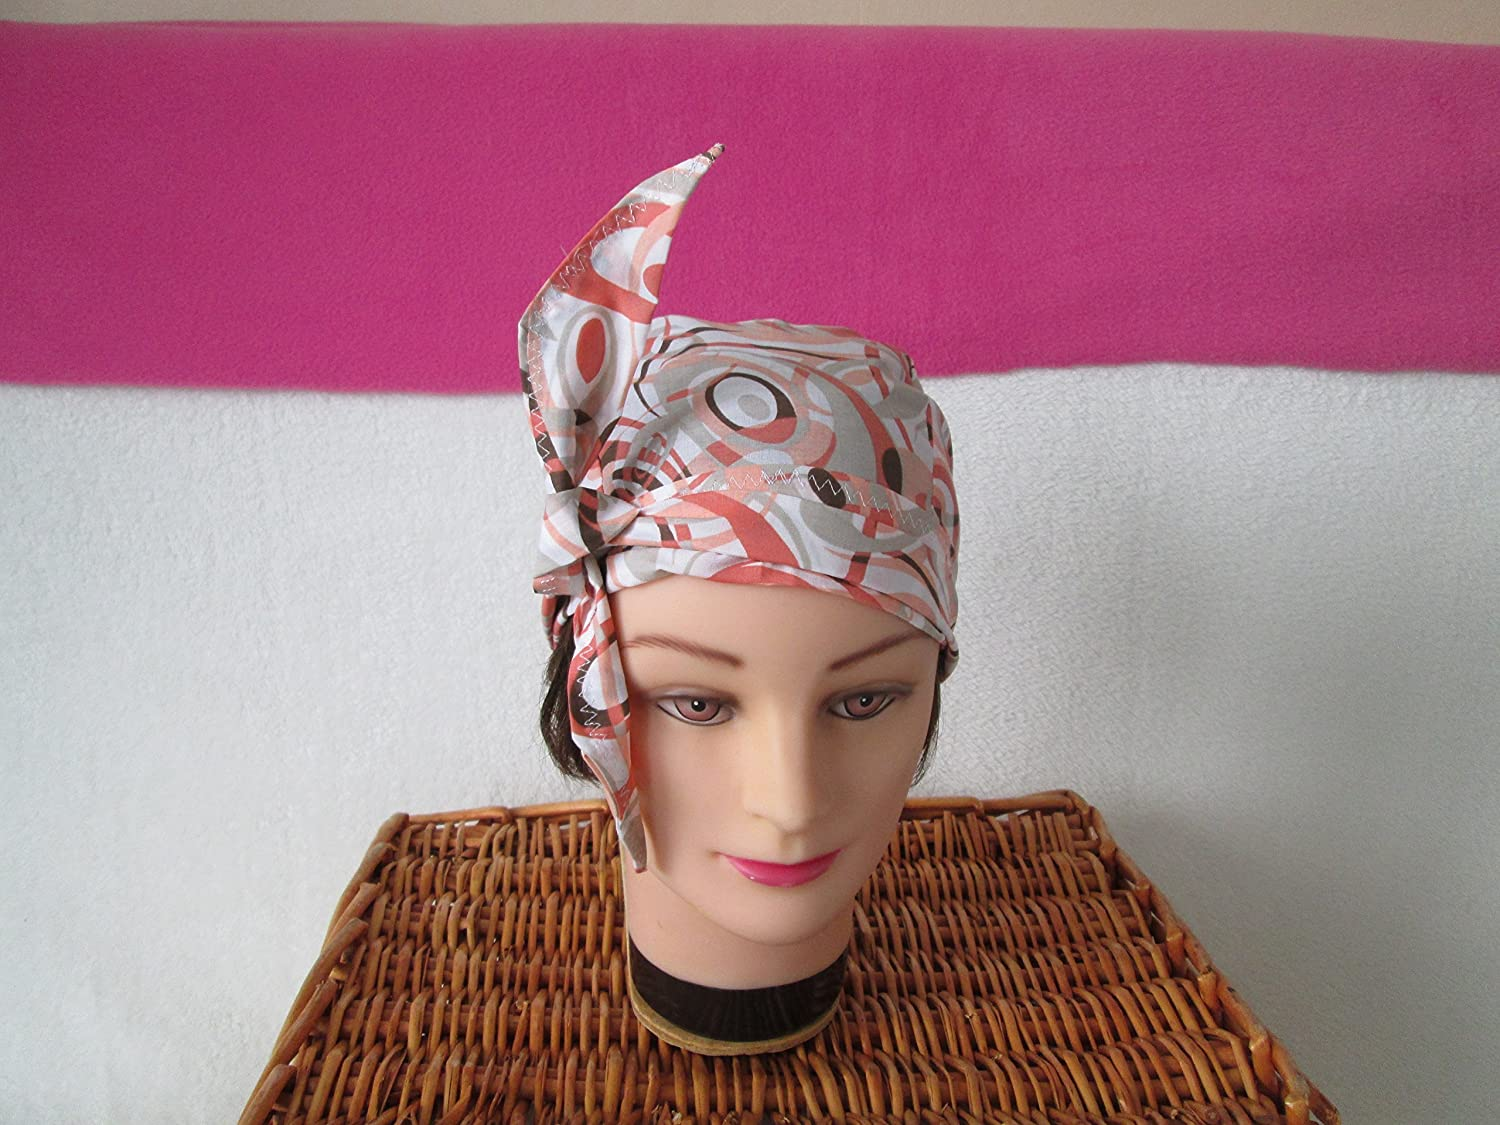 Foulard, turban chimio, bandeau pirate au féminin orange pastel